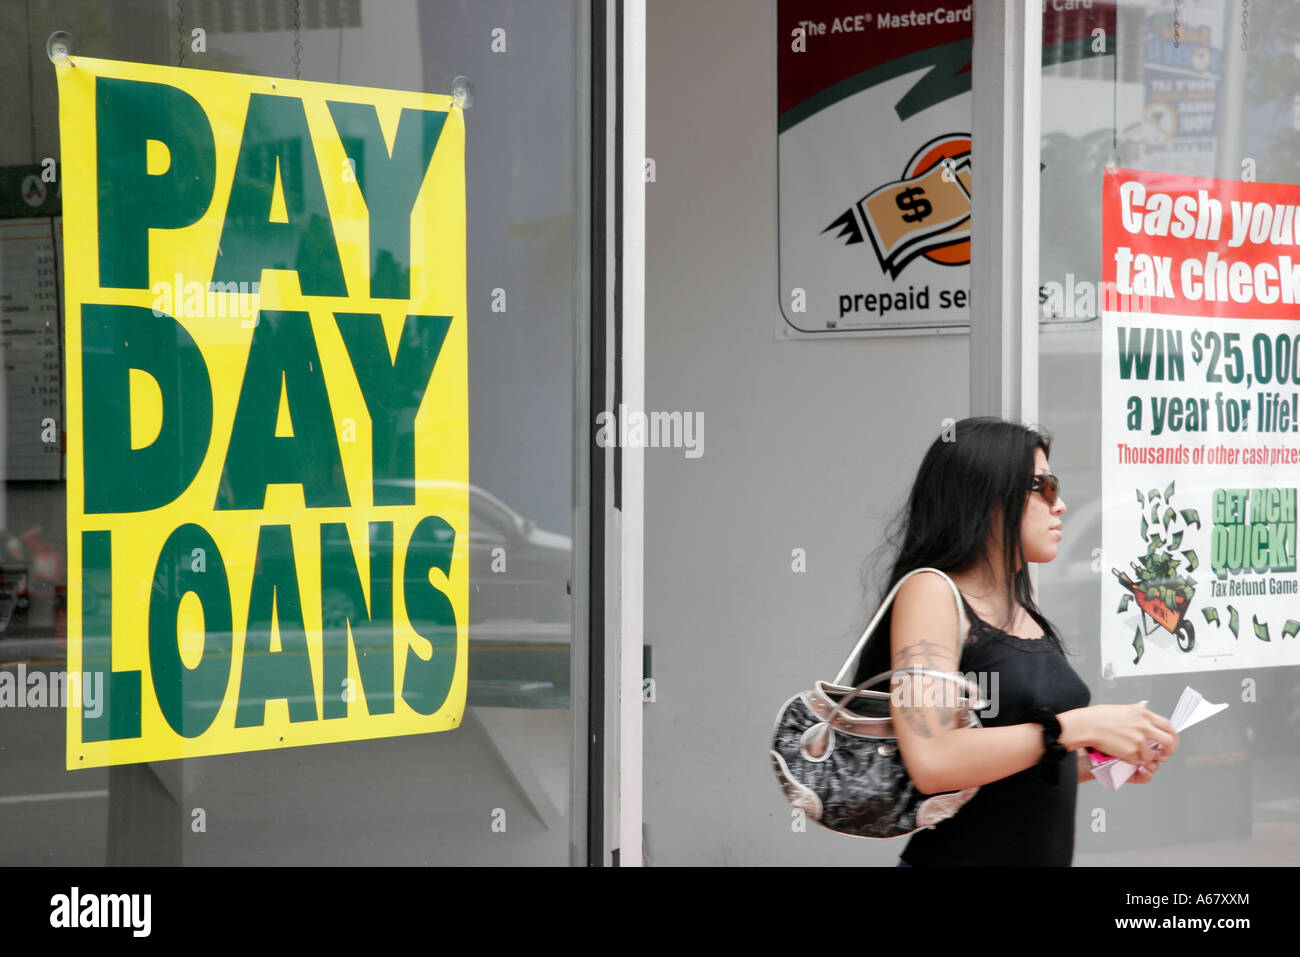 Payday loan niagara picture 2